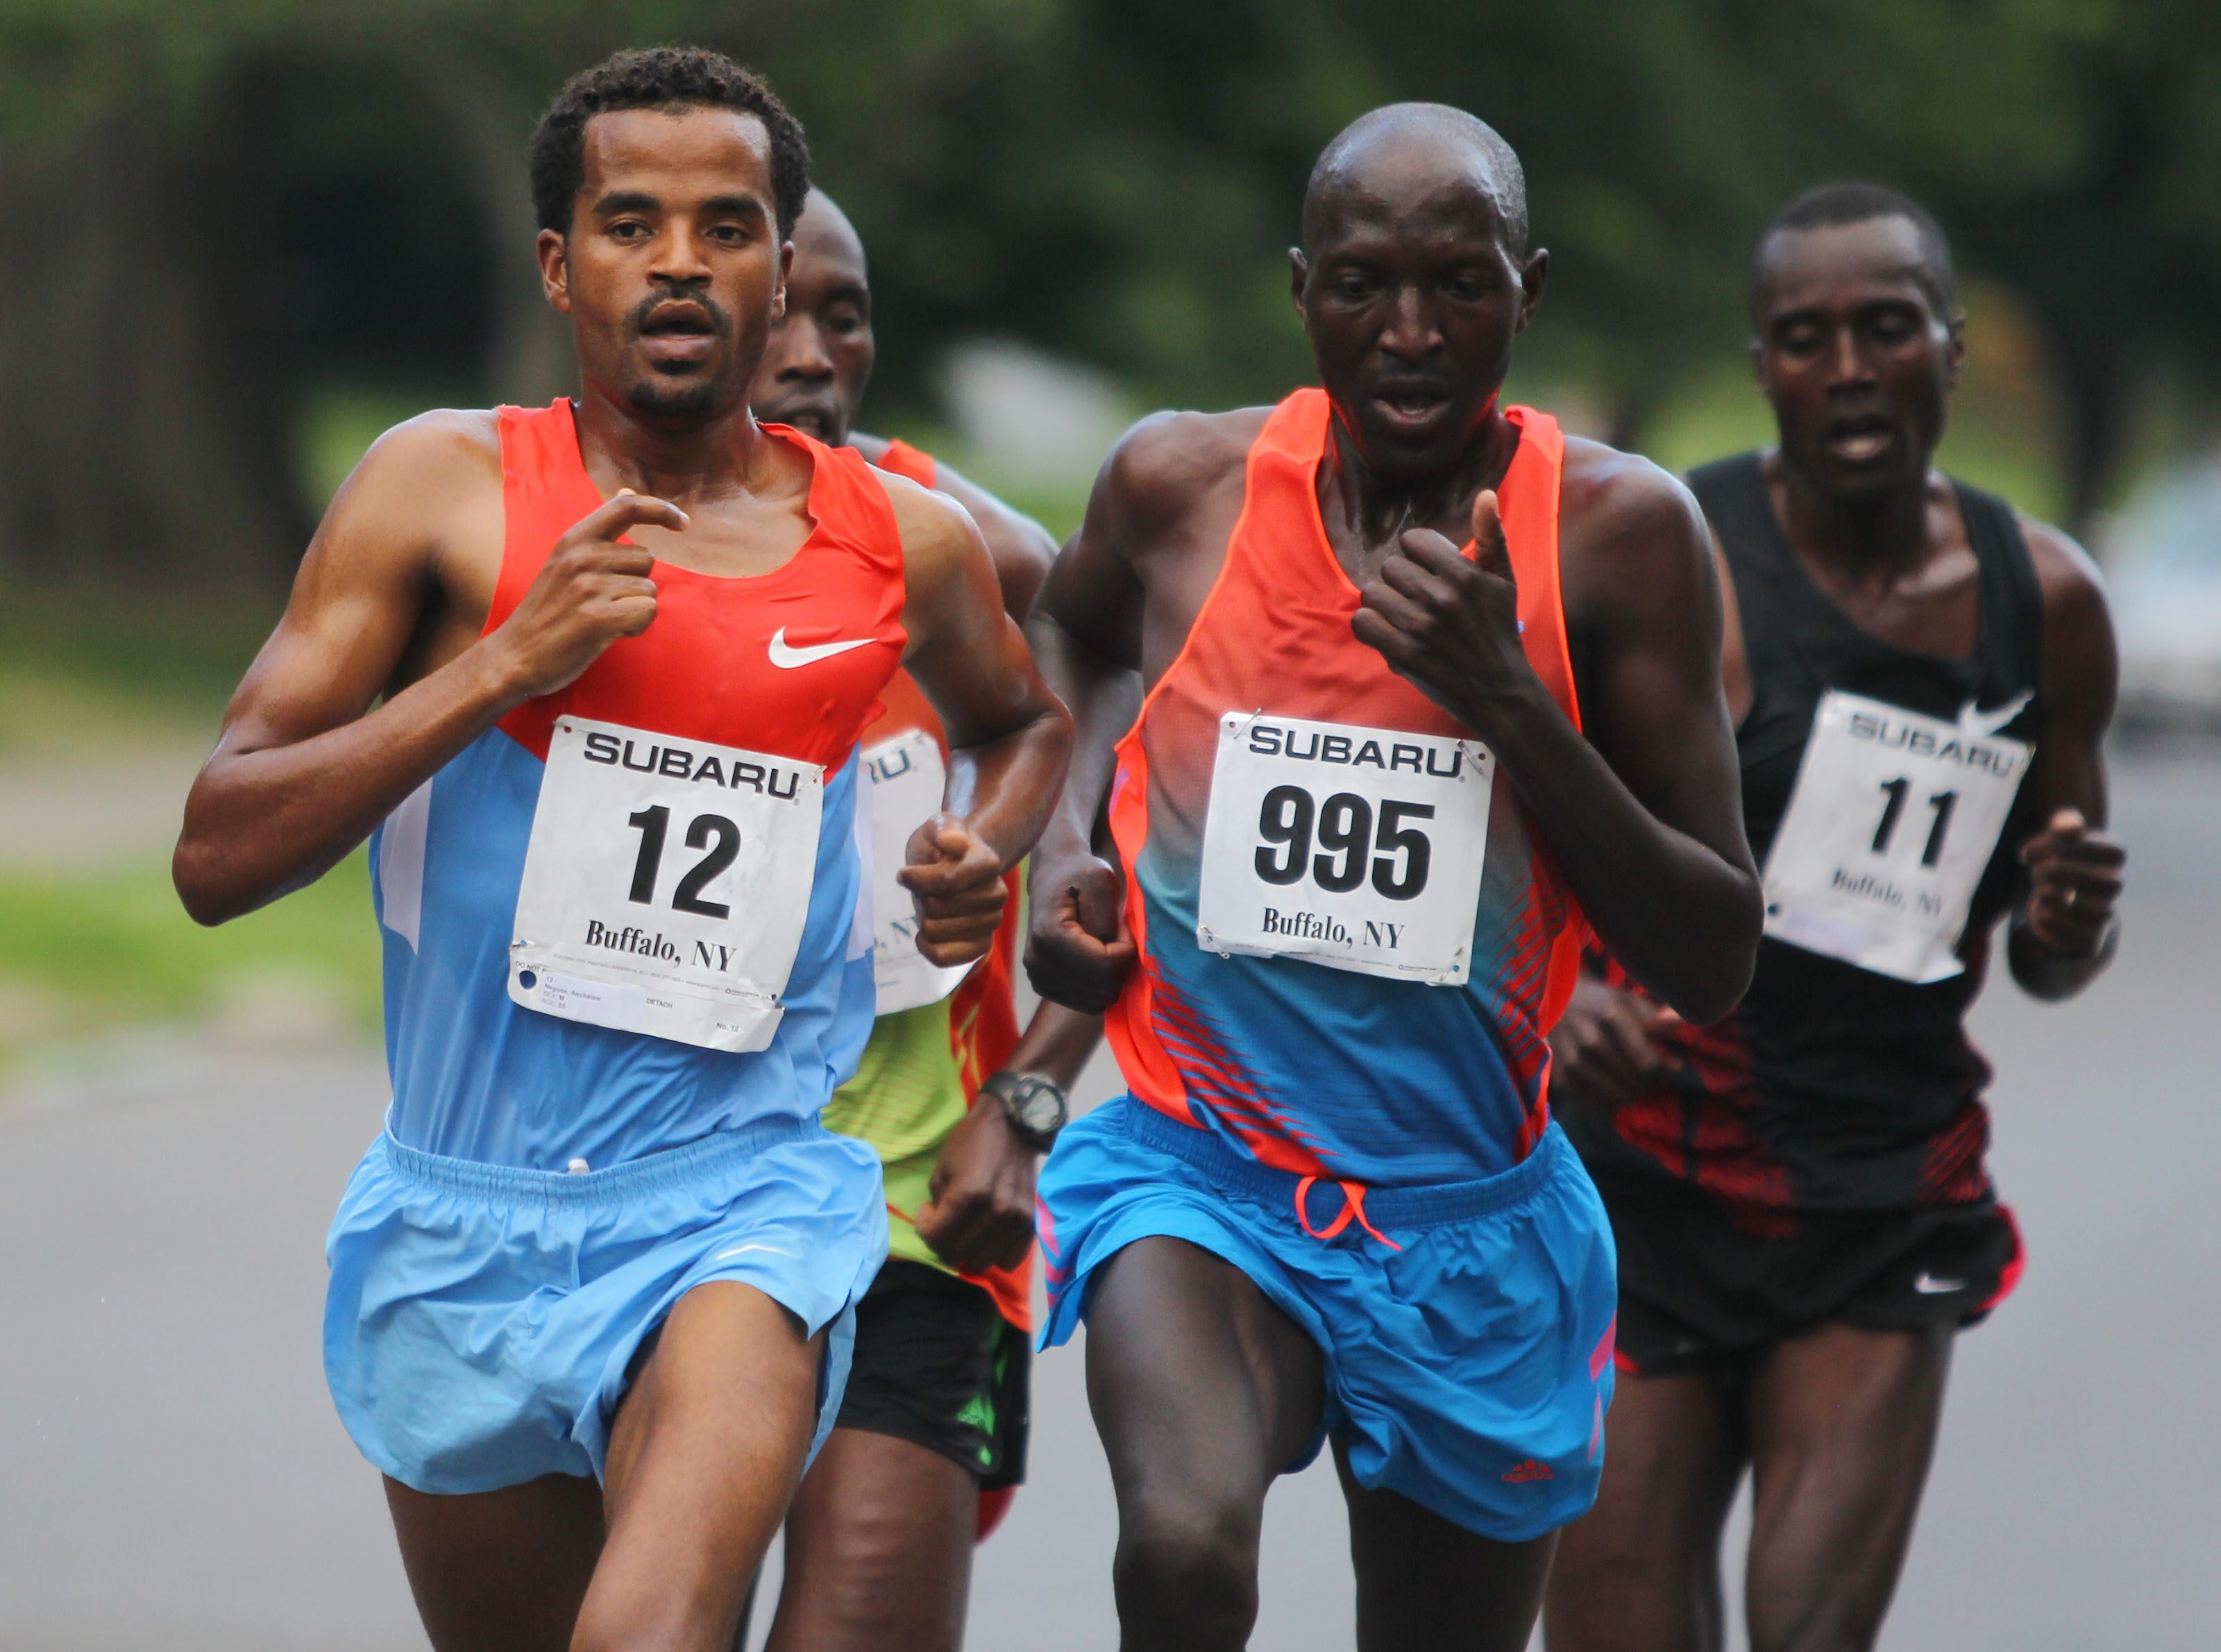 Aschalew Neguse (12), who is from Ethiopia, leads the pack on the way to victory in the Subaru 4-Mile Chase on Friday.